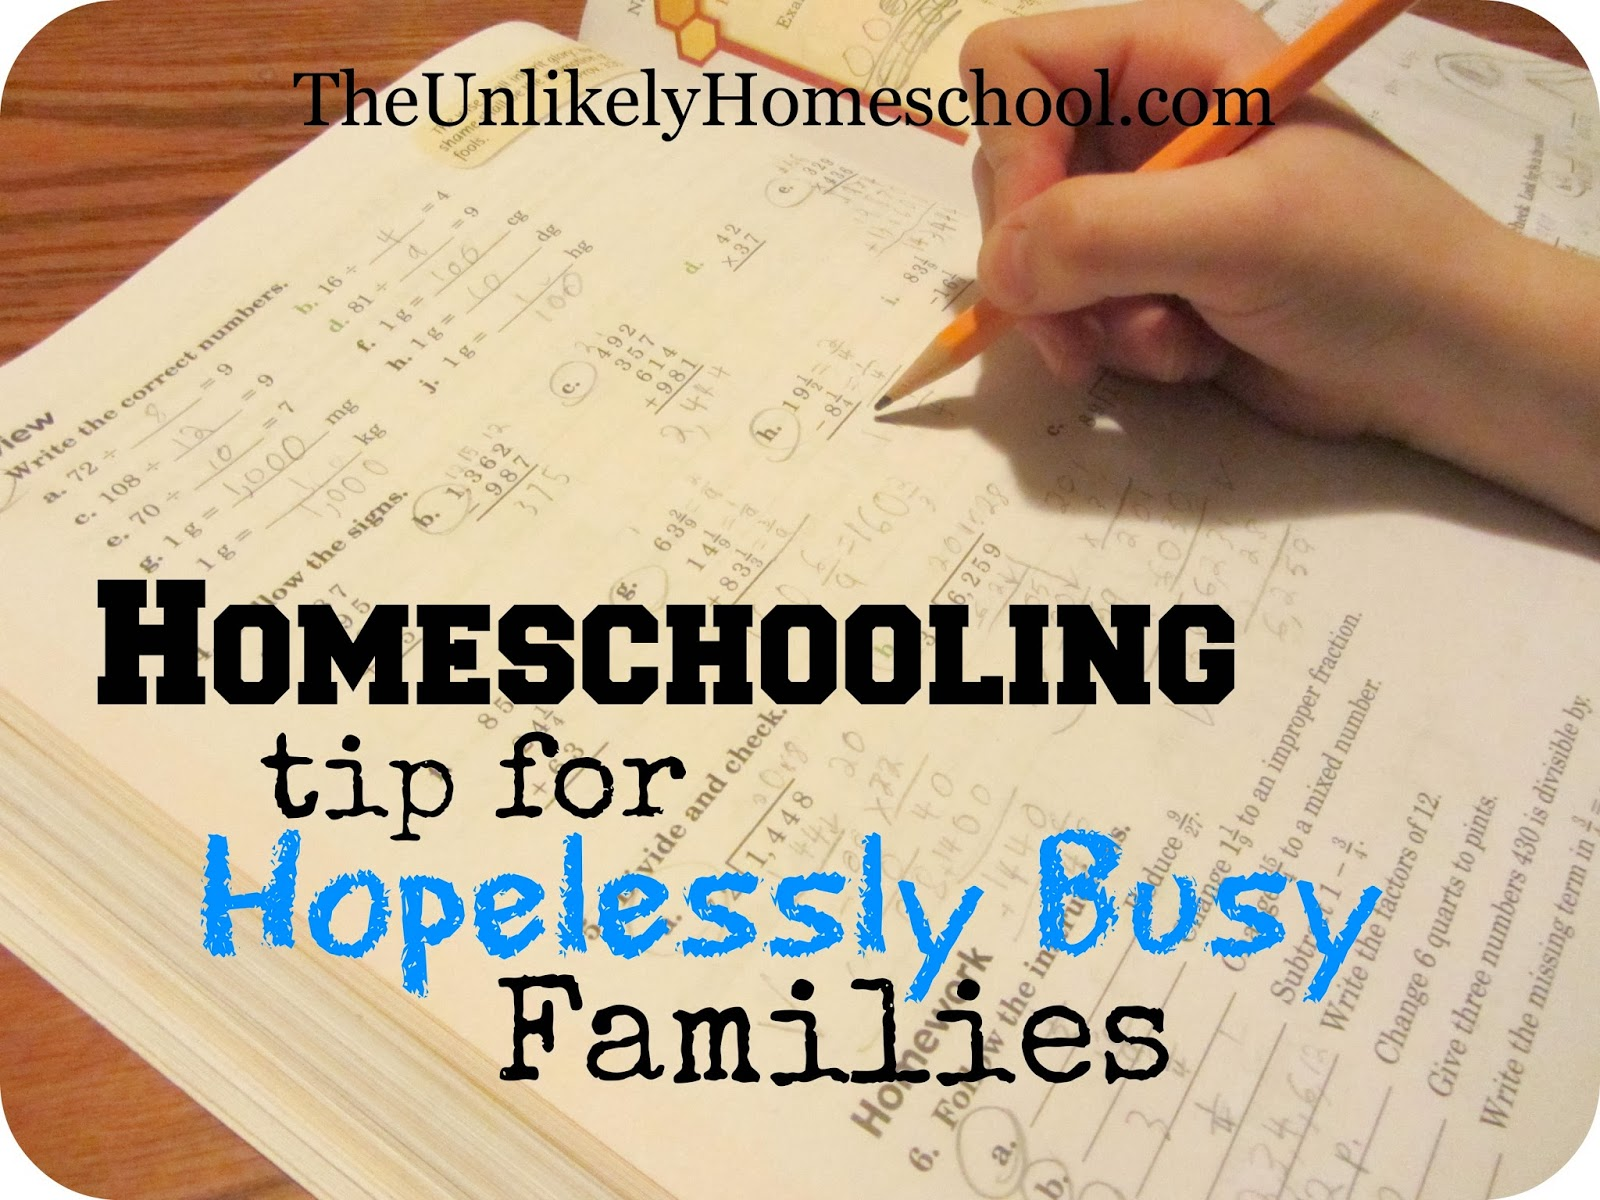 Homeschool tip for Hopelessly Busy Families-The Unlikely Homeschool